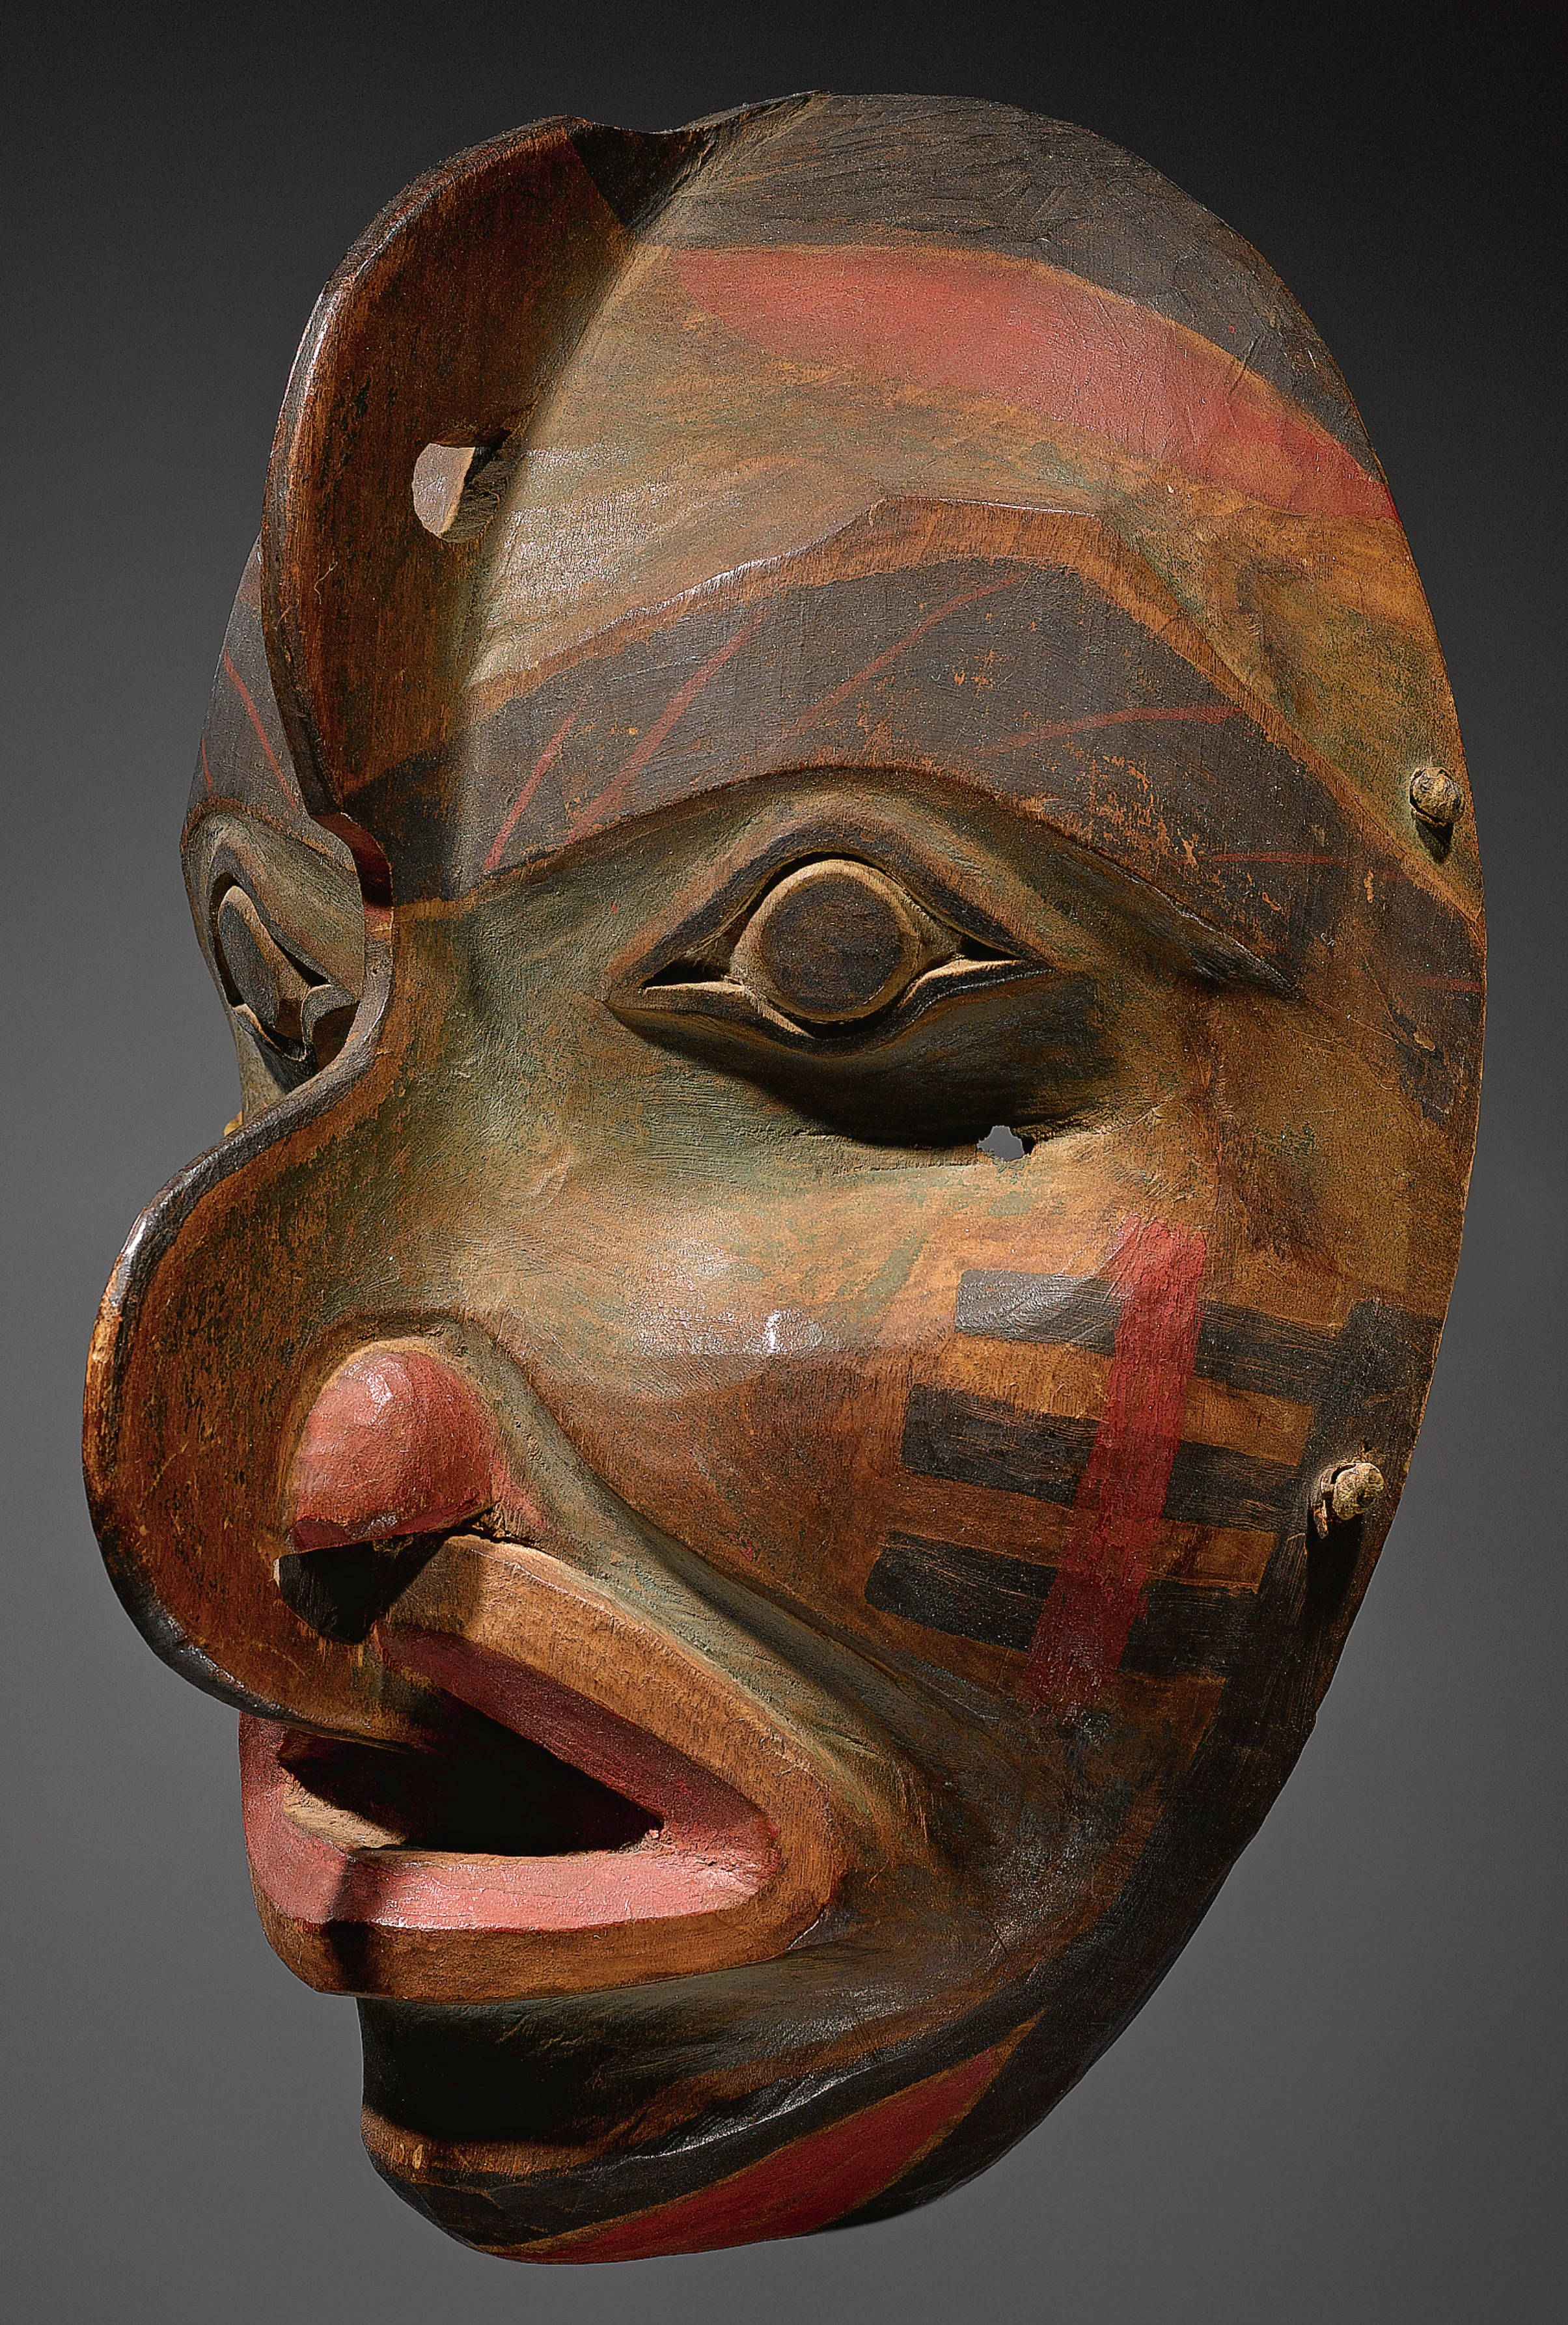 Clothing, Masks and Weaving of the First Nations of the ...